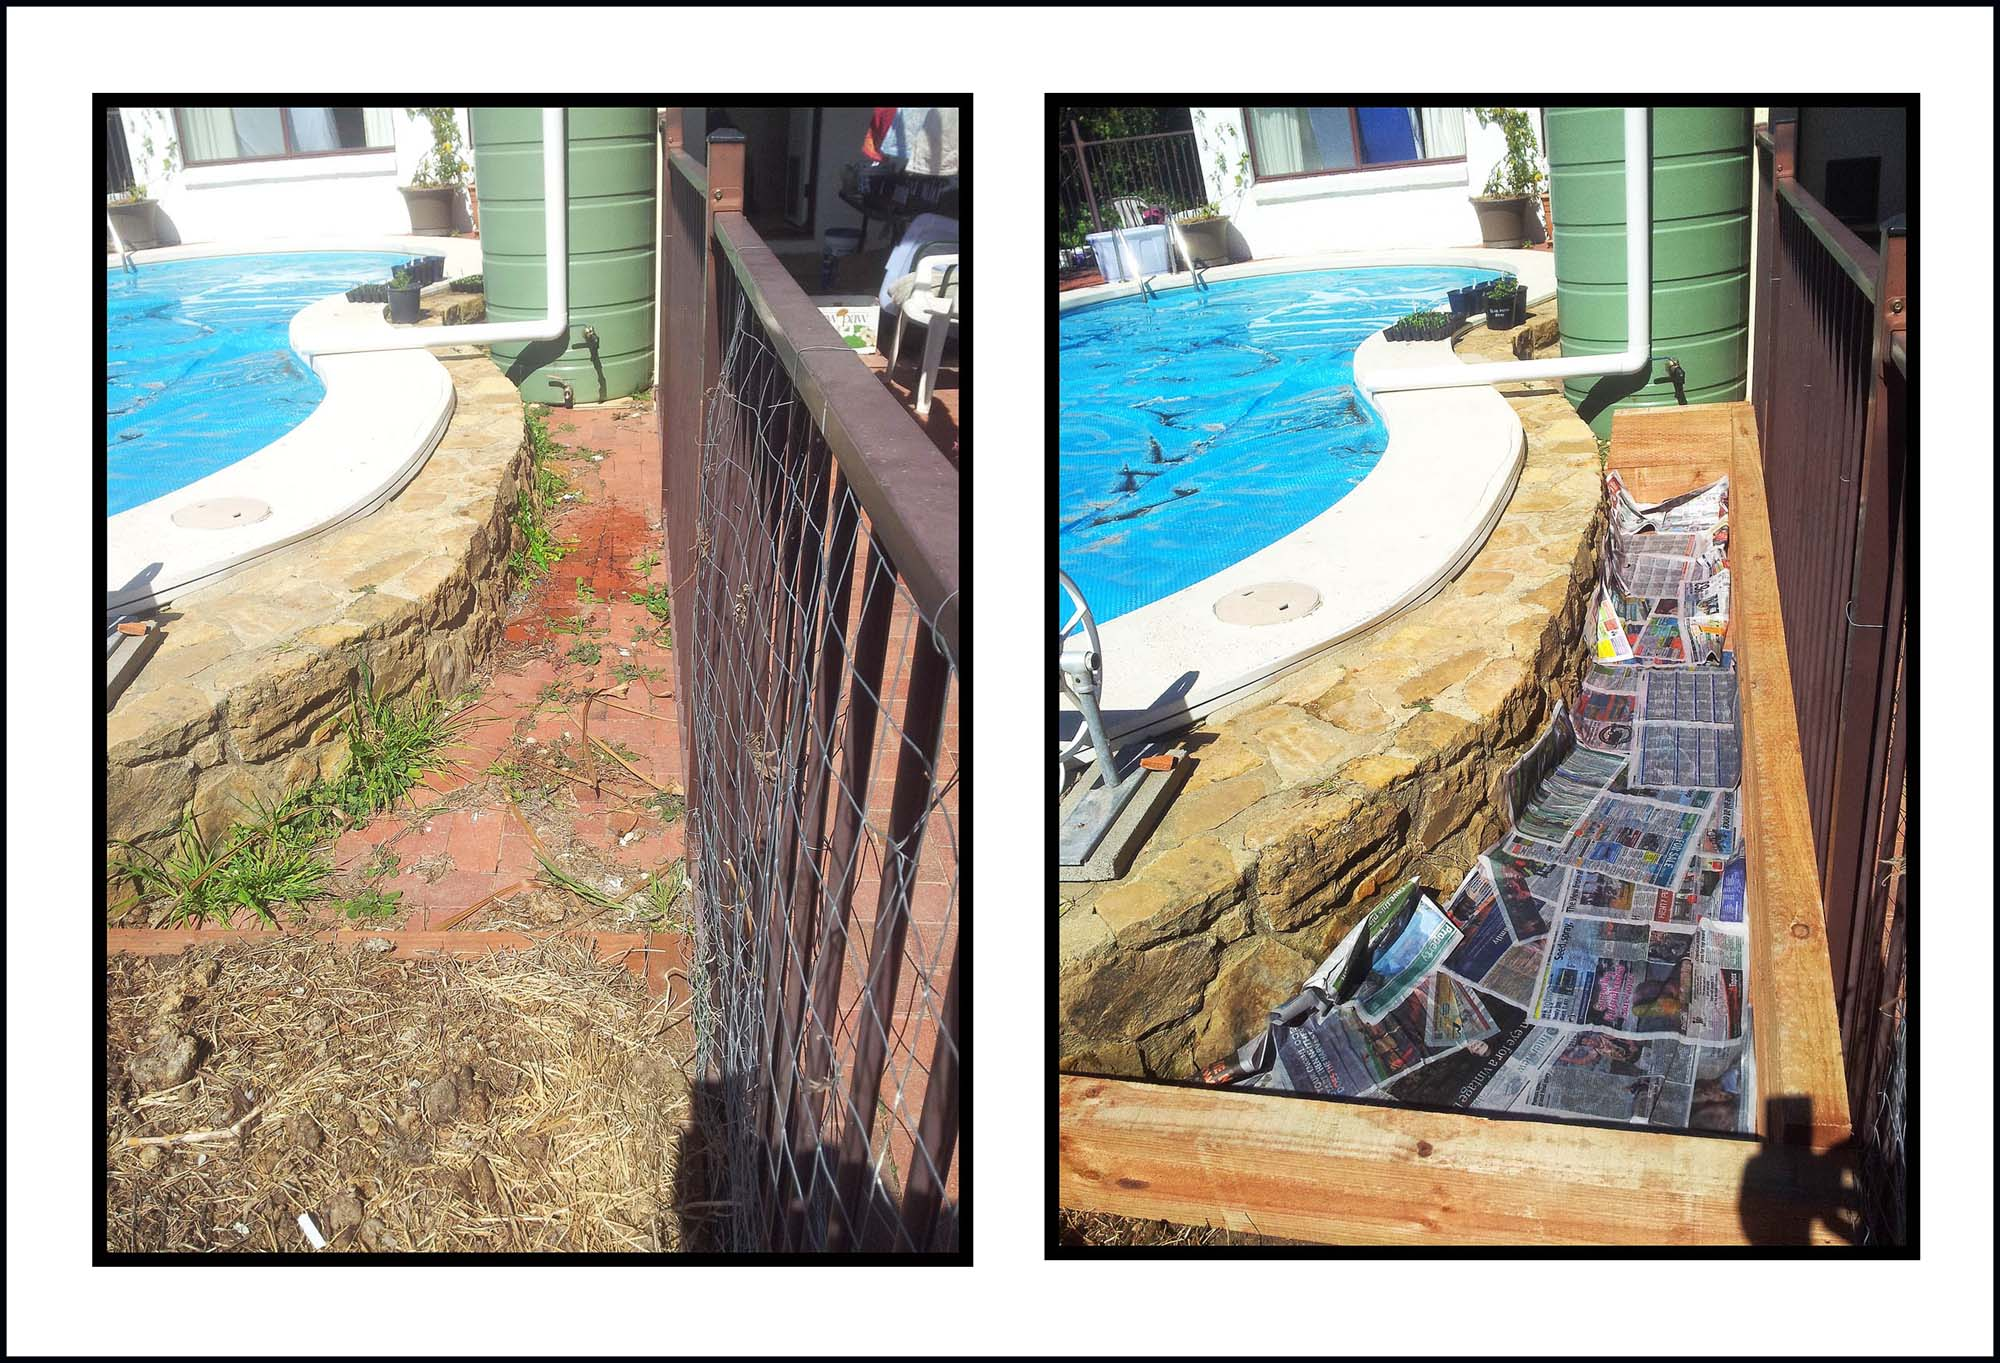 Our new pool garden bed: Before and during construction.